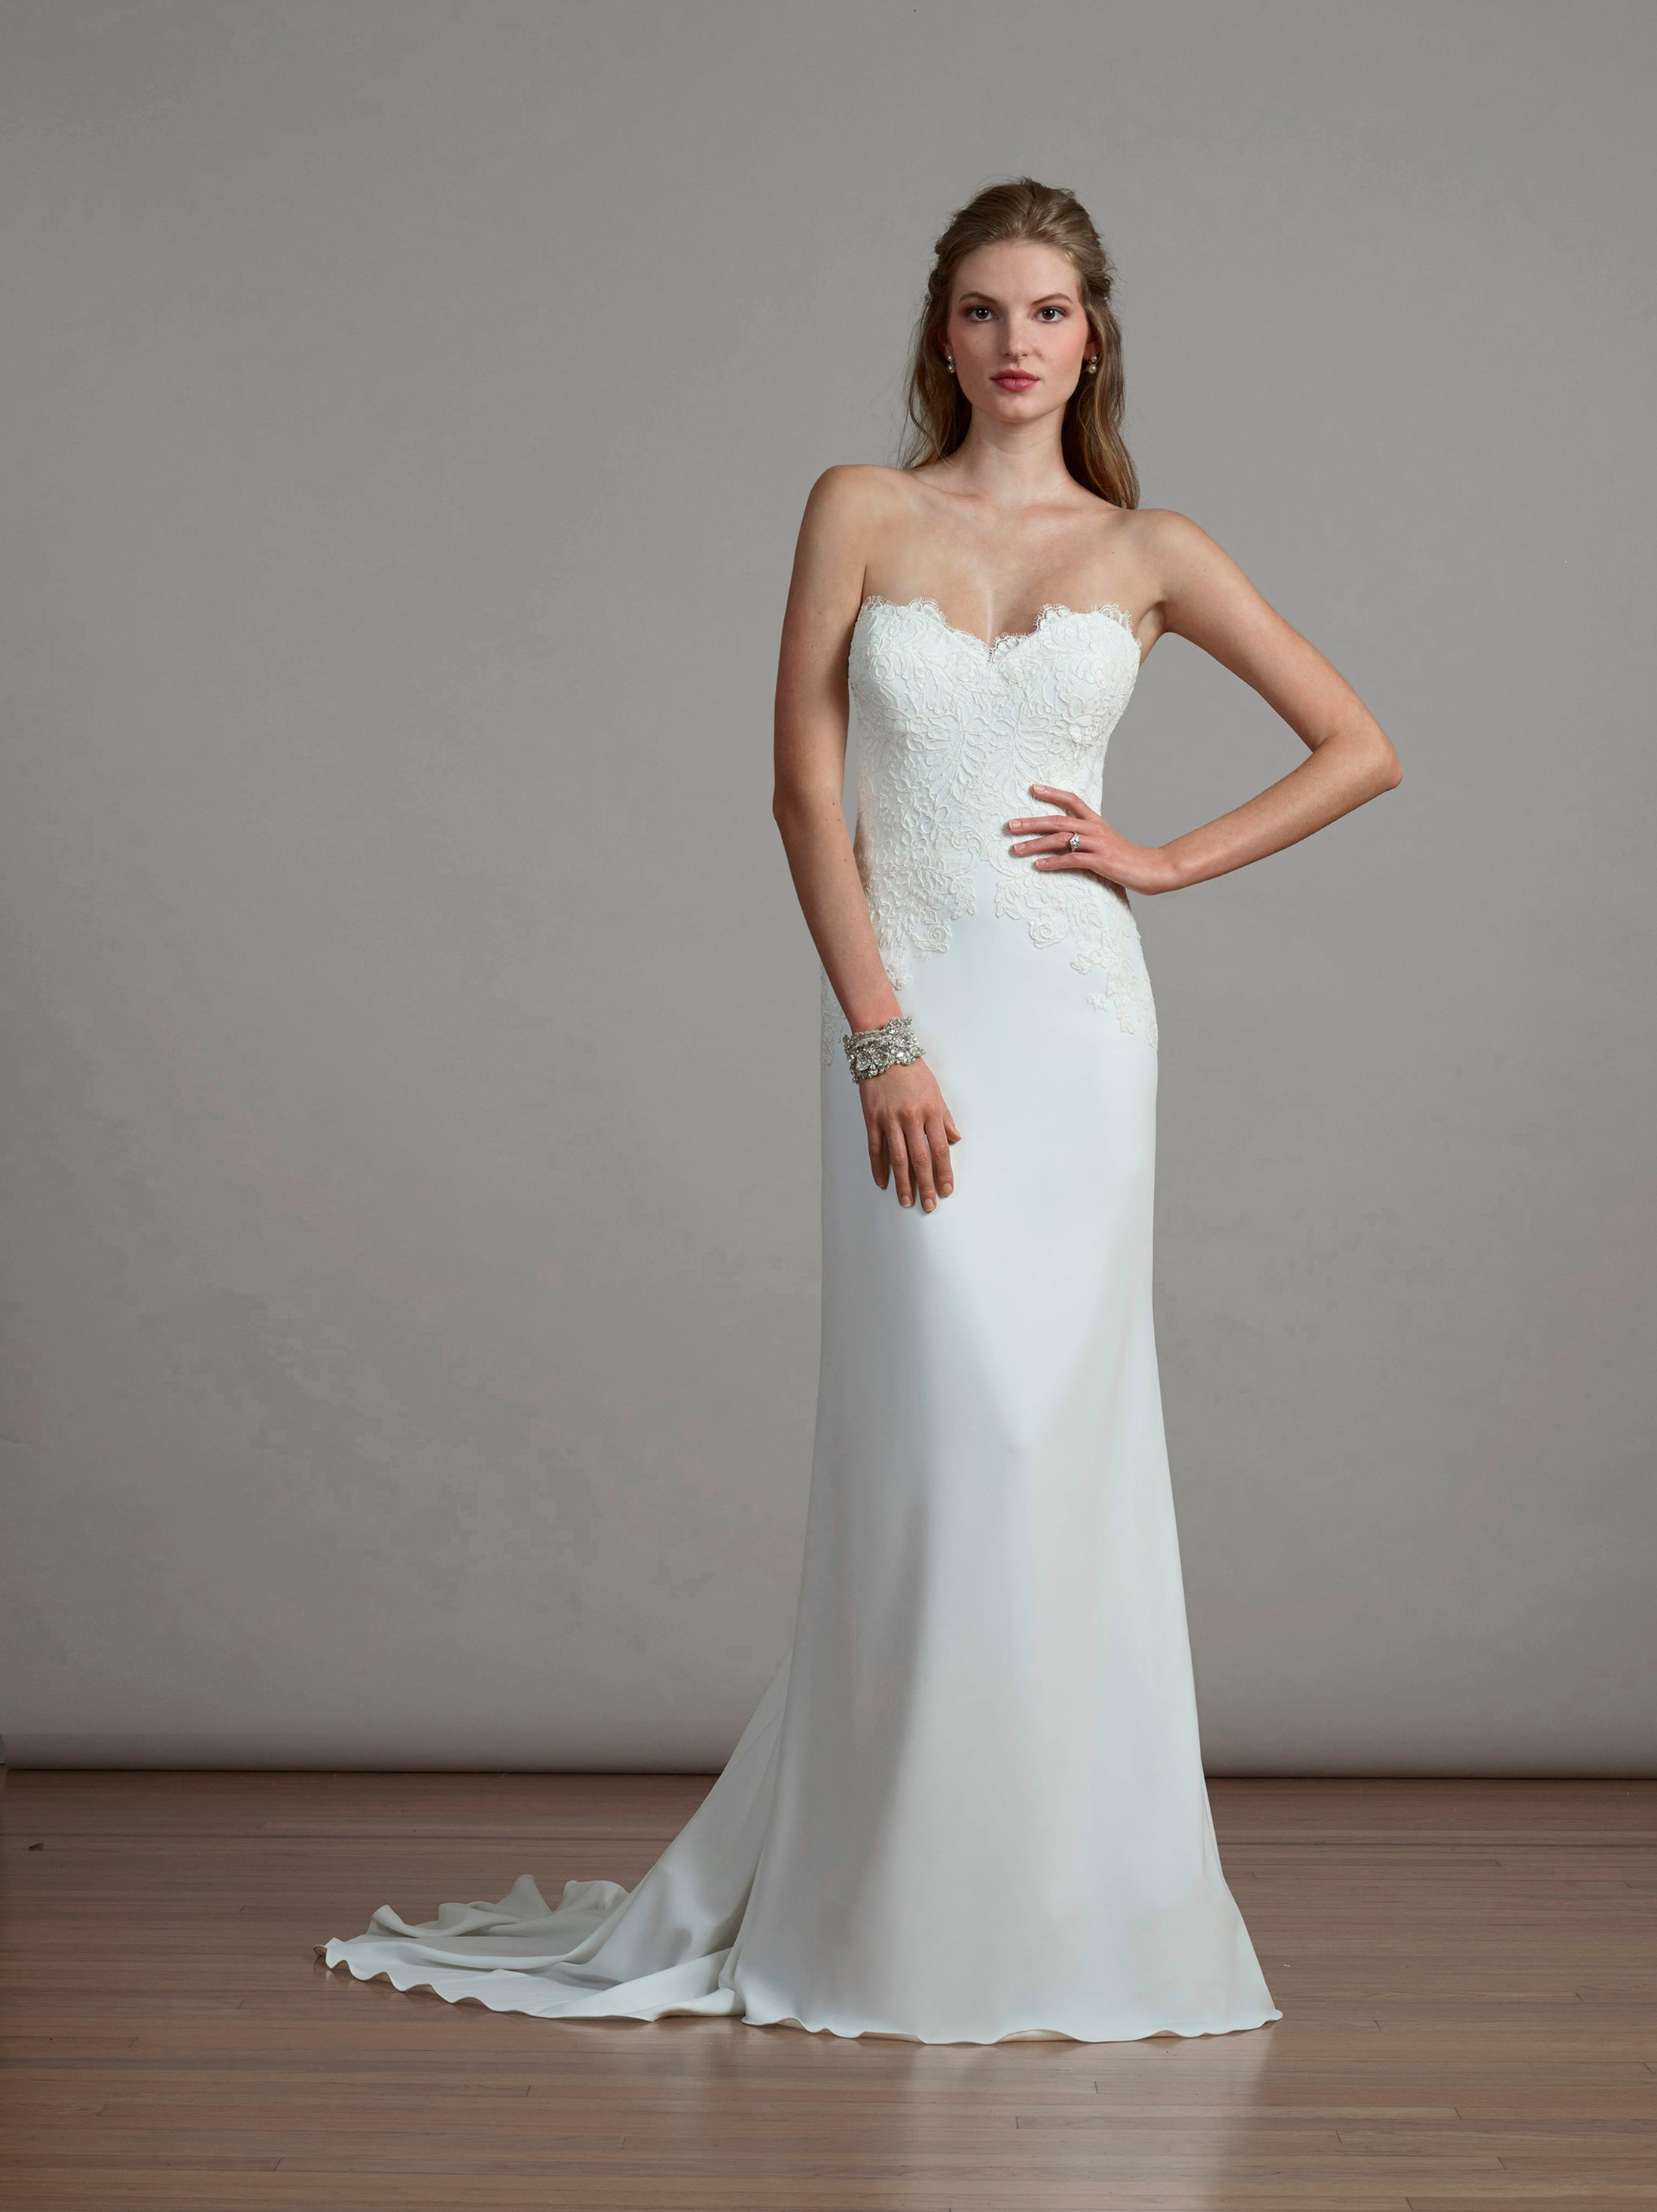 a141e2e55853 Liancarlo Spring 2018 bridal collection 6883 wedding dress crepe fit and  flare gown